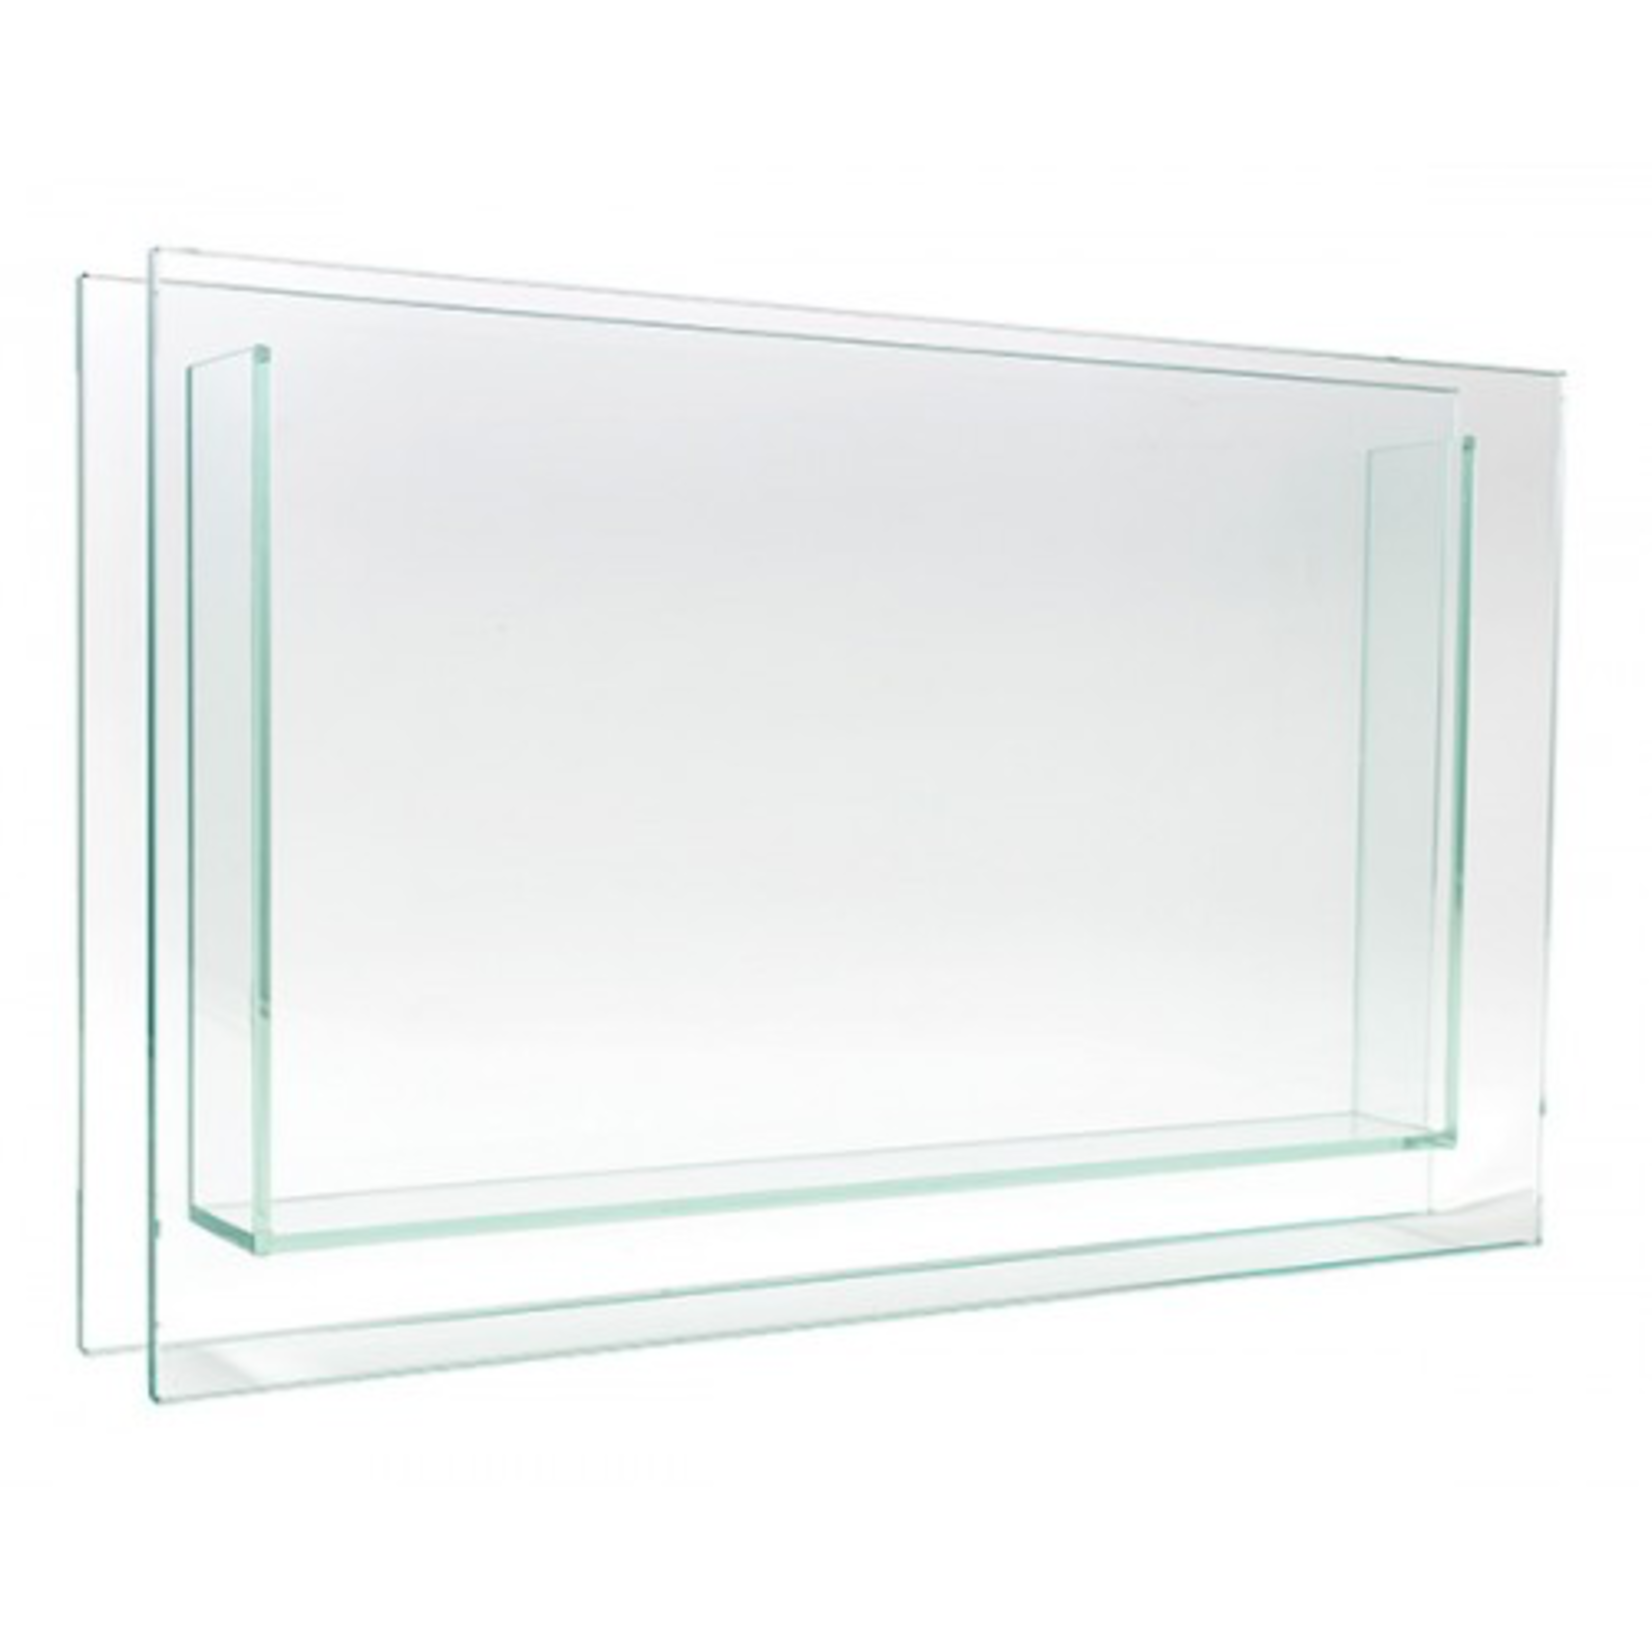 """18"""" X 2"""" X 12"""" SQUARE PLATE GLASS"""